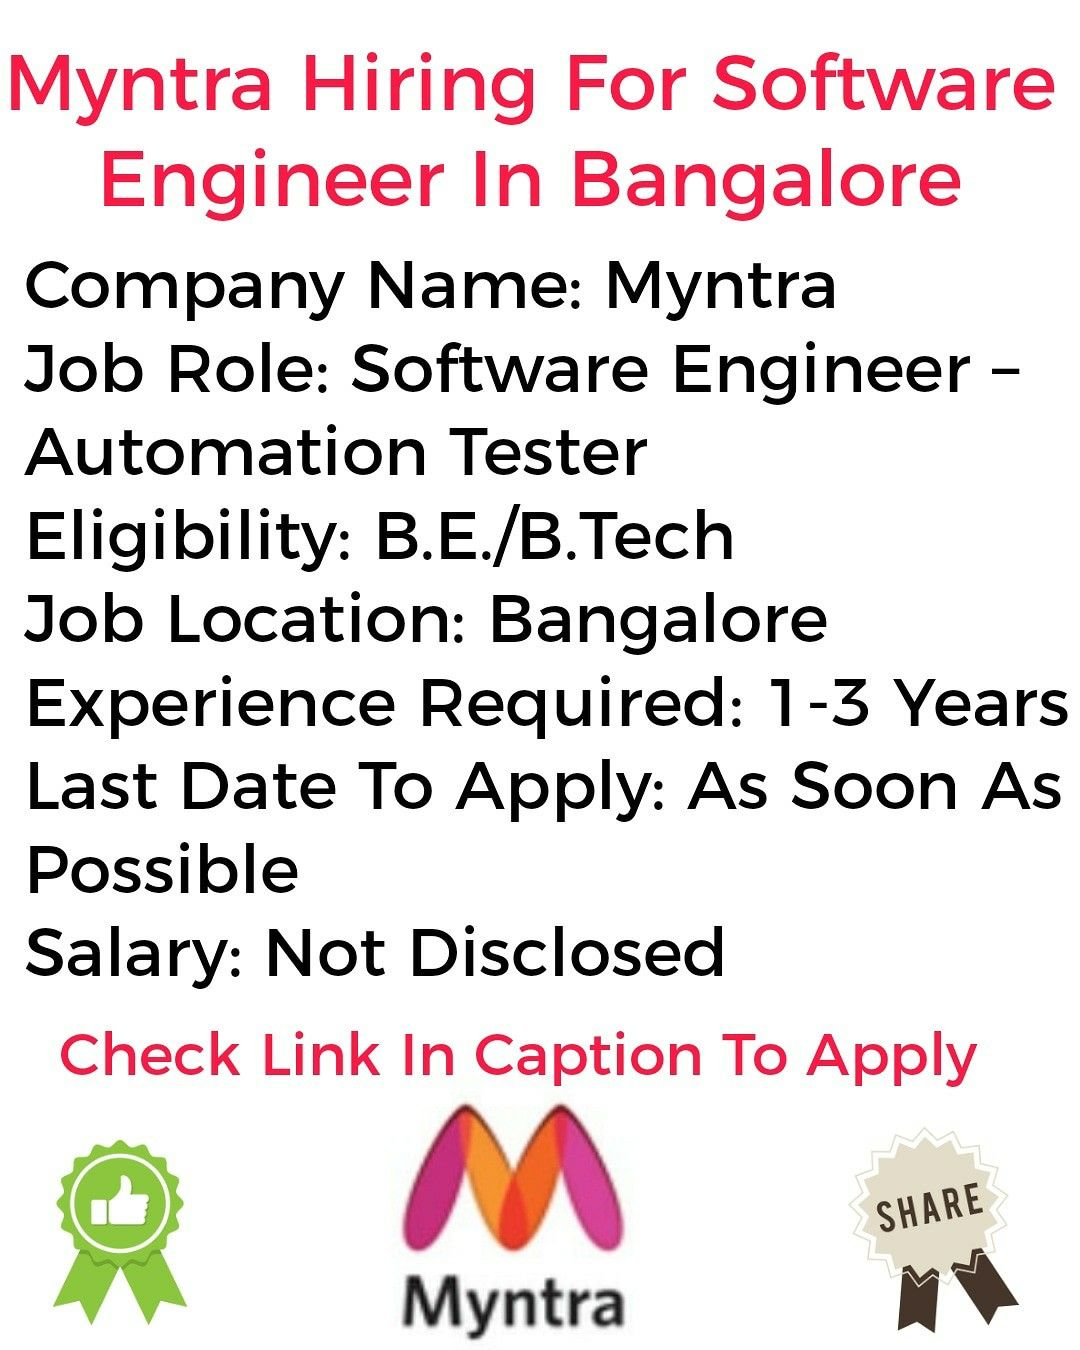 Myntra Hiring For Software Engineer In Bangalore in 2020